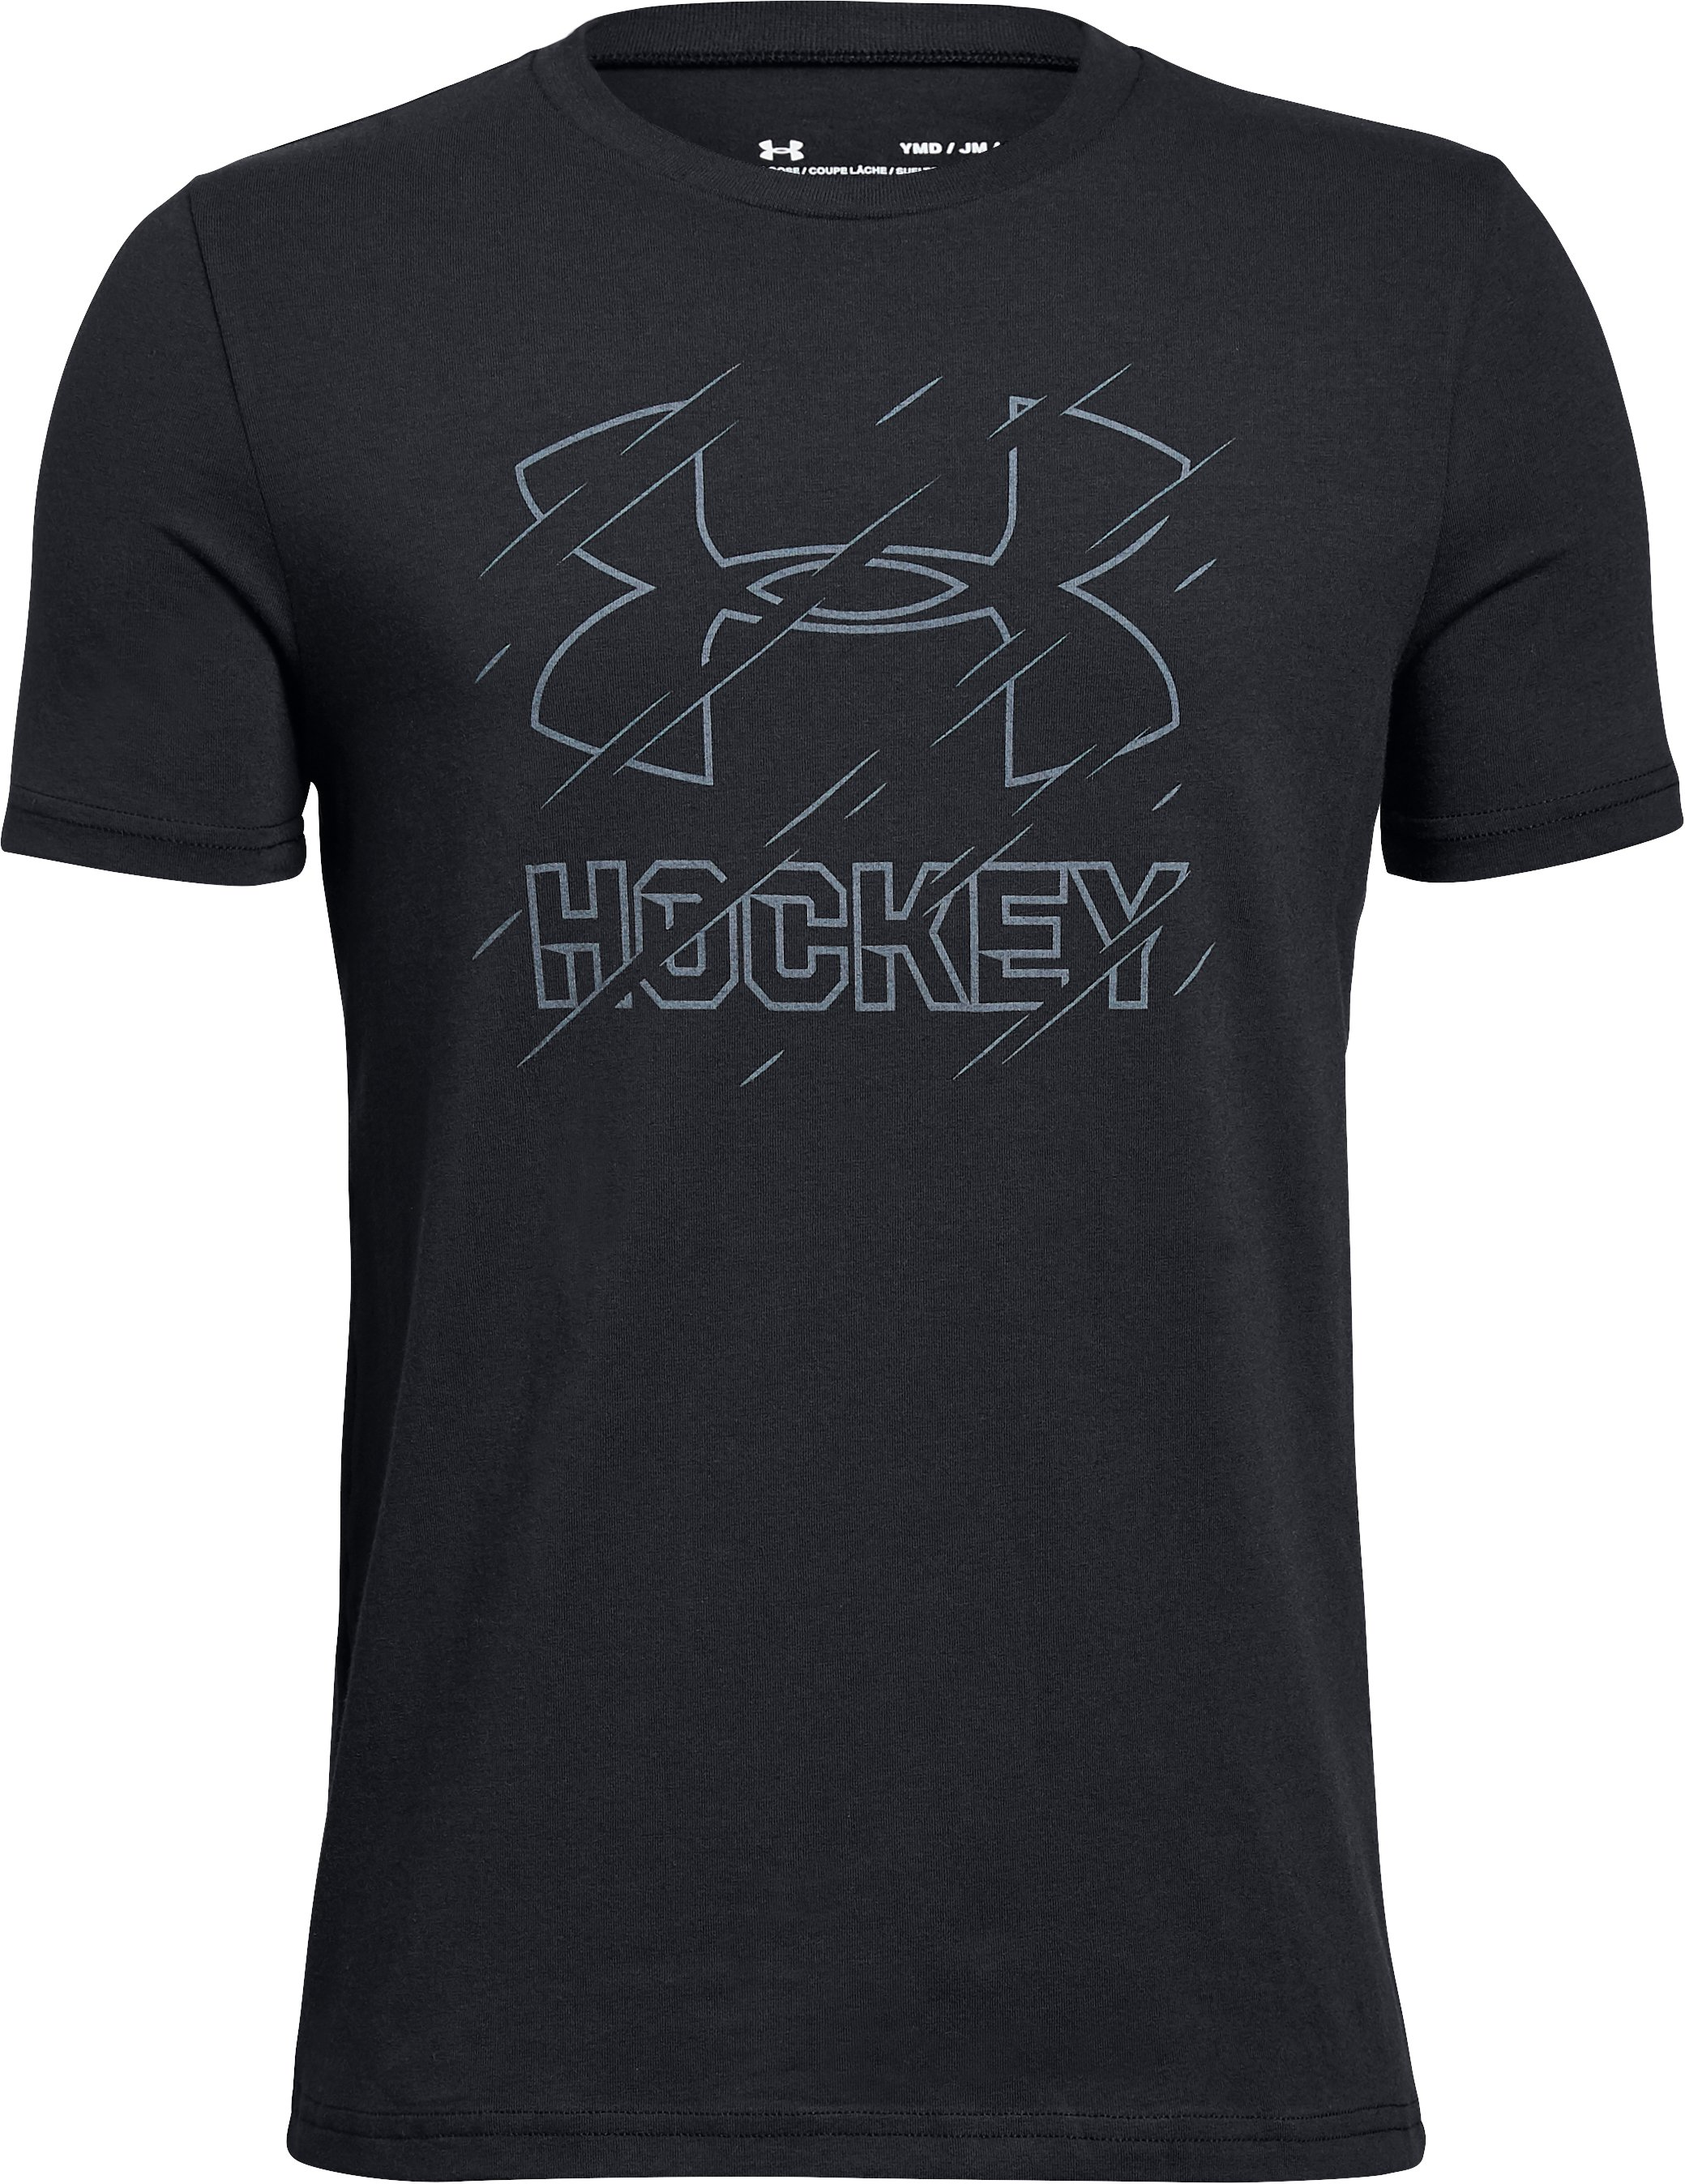 Boys' UA Hockey T-Shirt, Black